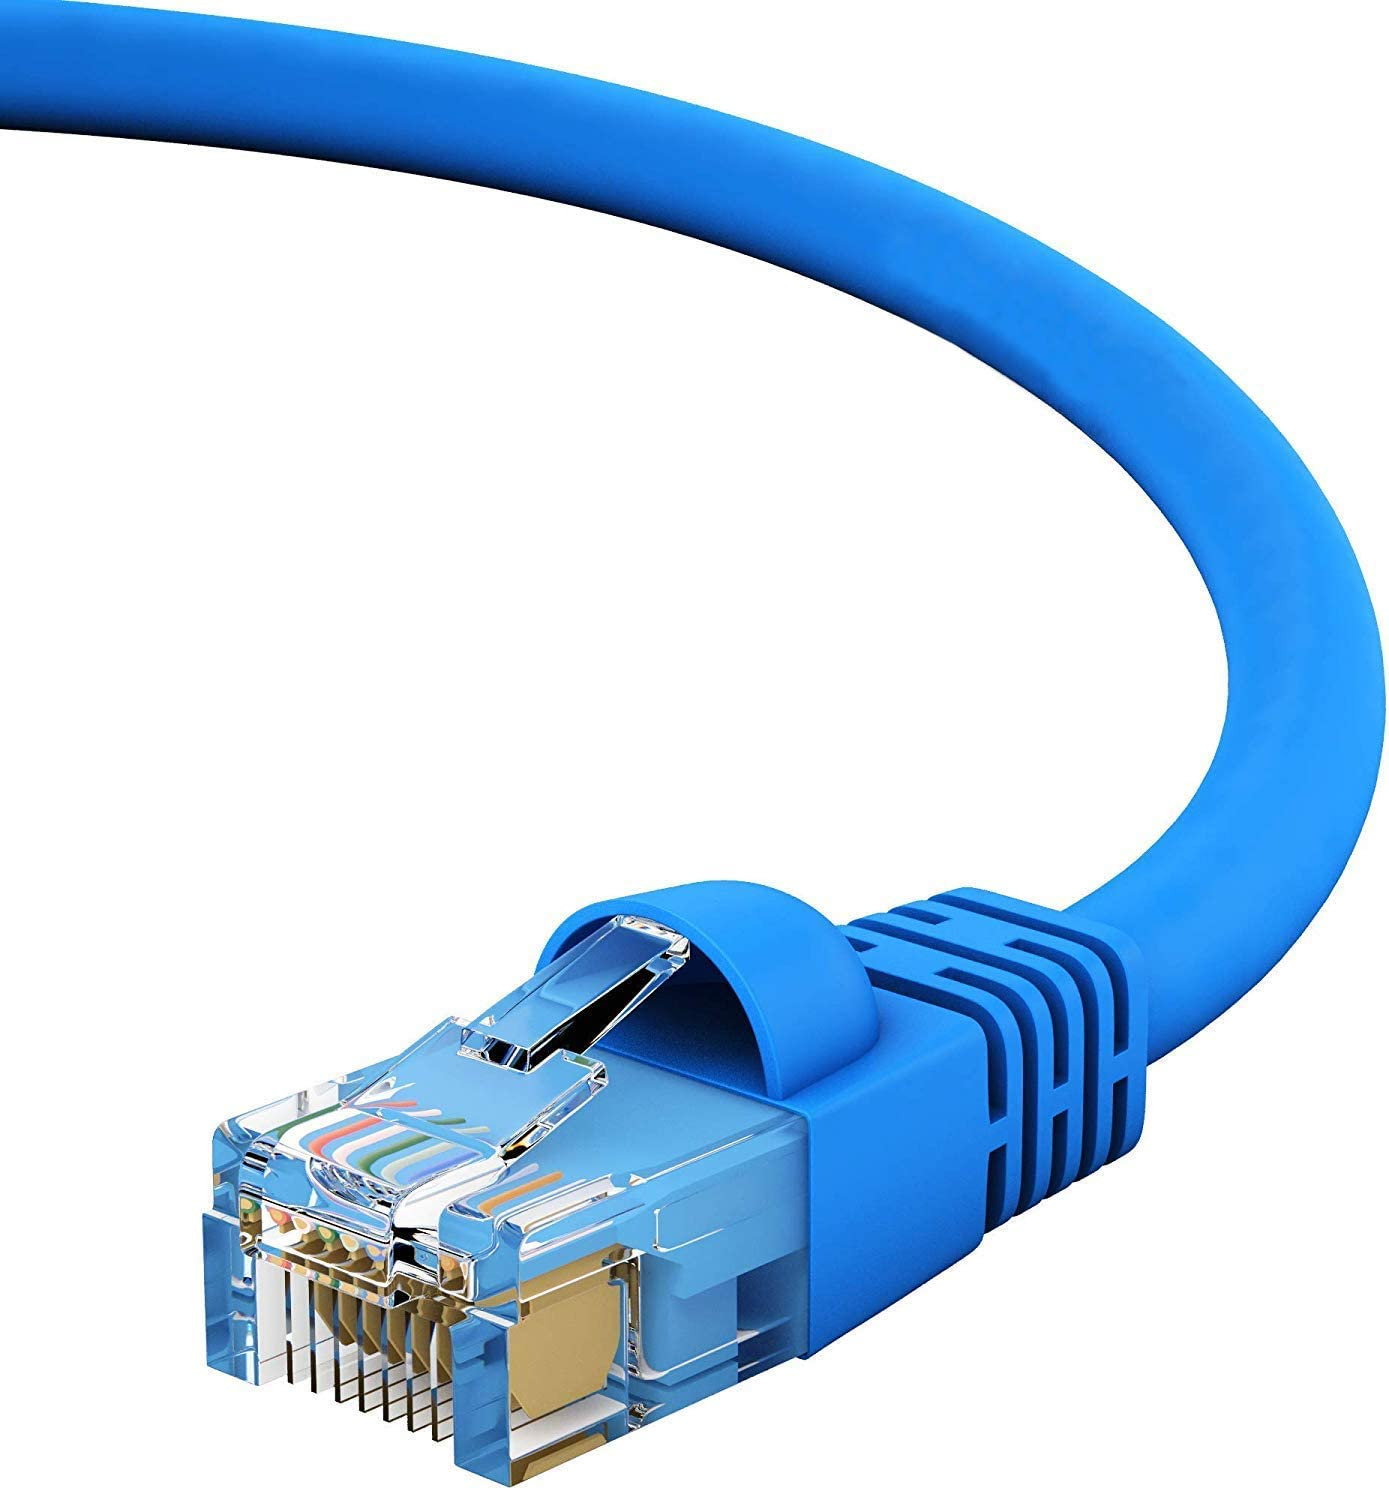 GOWOS Cat5e Ethernet Cable Blue 1Gigabit//Sec High Speed LAN Internet//Patch Cable 10-Pack - 0.5 Feet 24AWG Network Cable with Gold Plated RJ45 Snagless//Molded//Booted Connector 350MHz